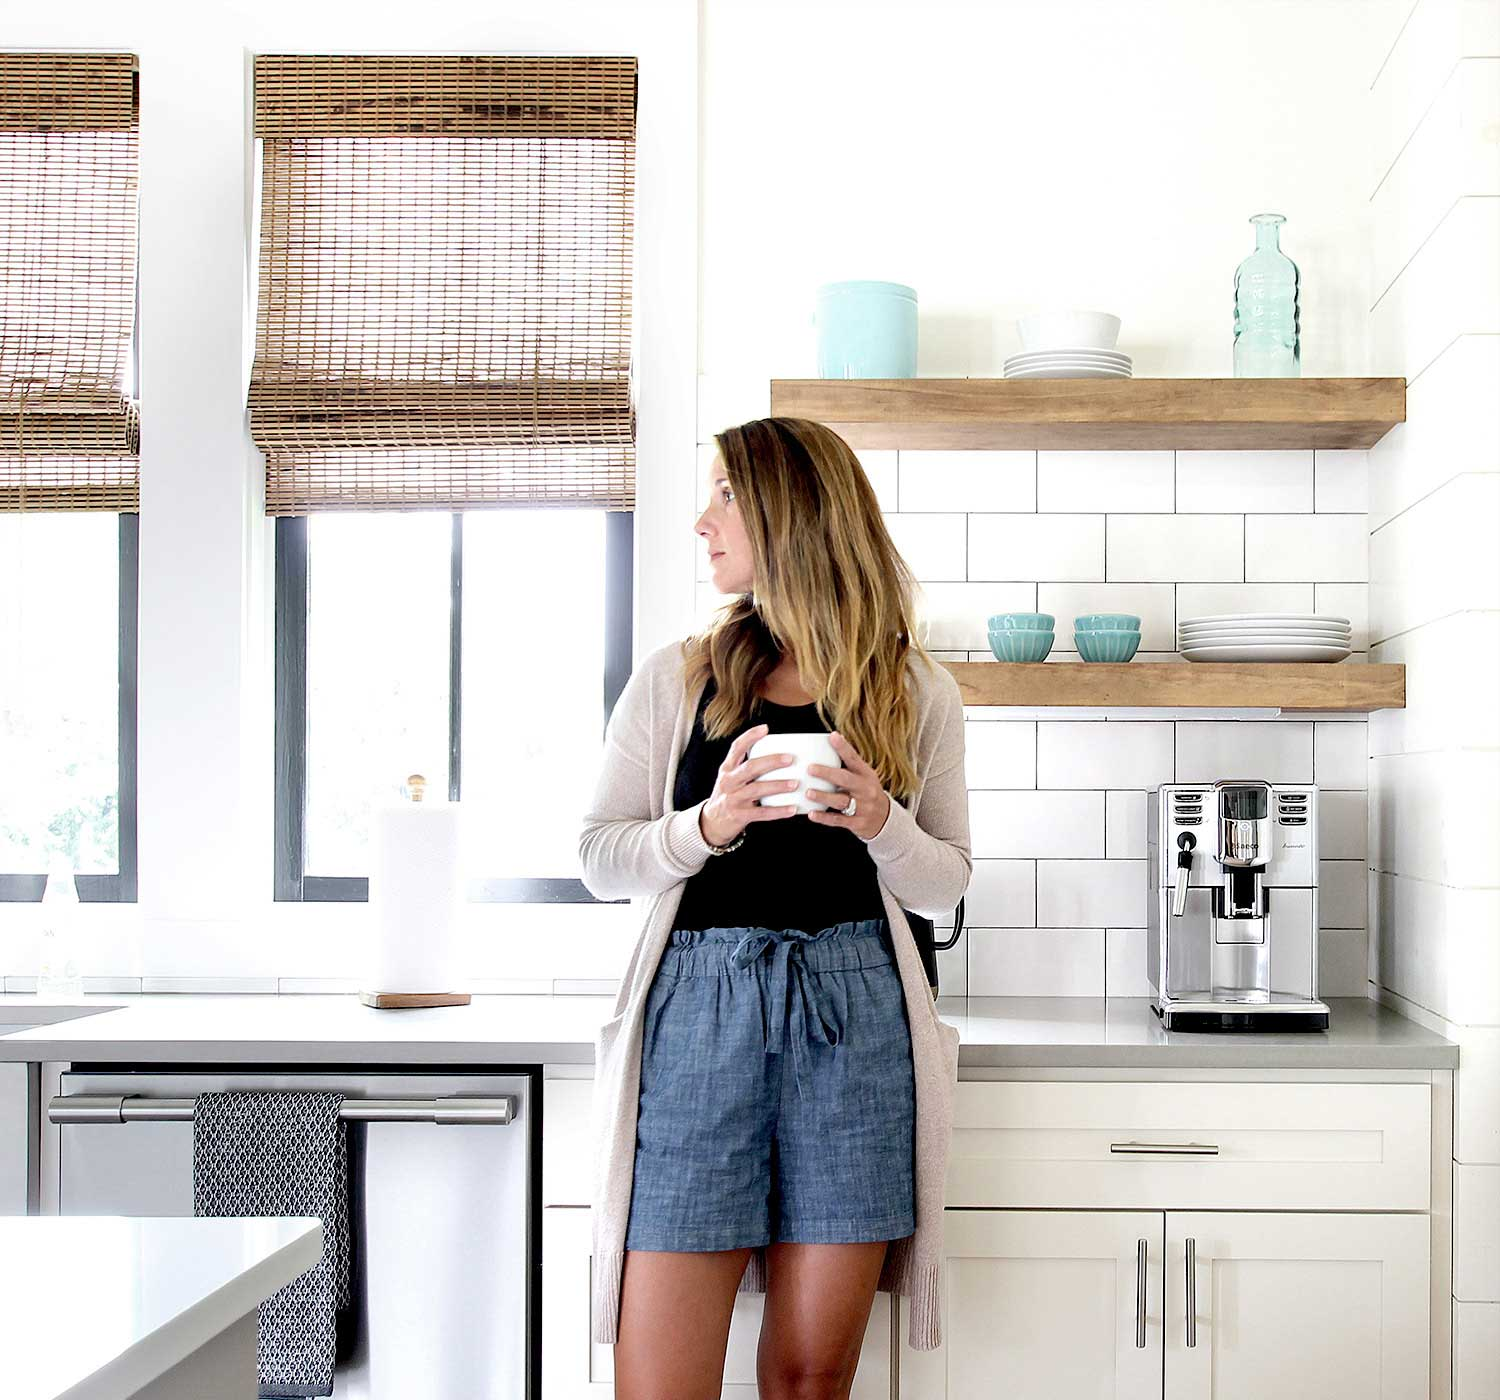 how build and install floating shelves for the kitchen plank brooke coffee web using when built our house plan was two each side sink but time got closer move there were too